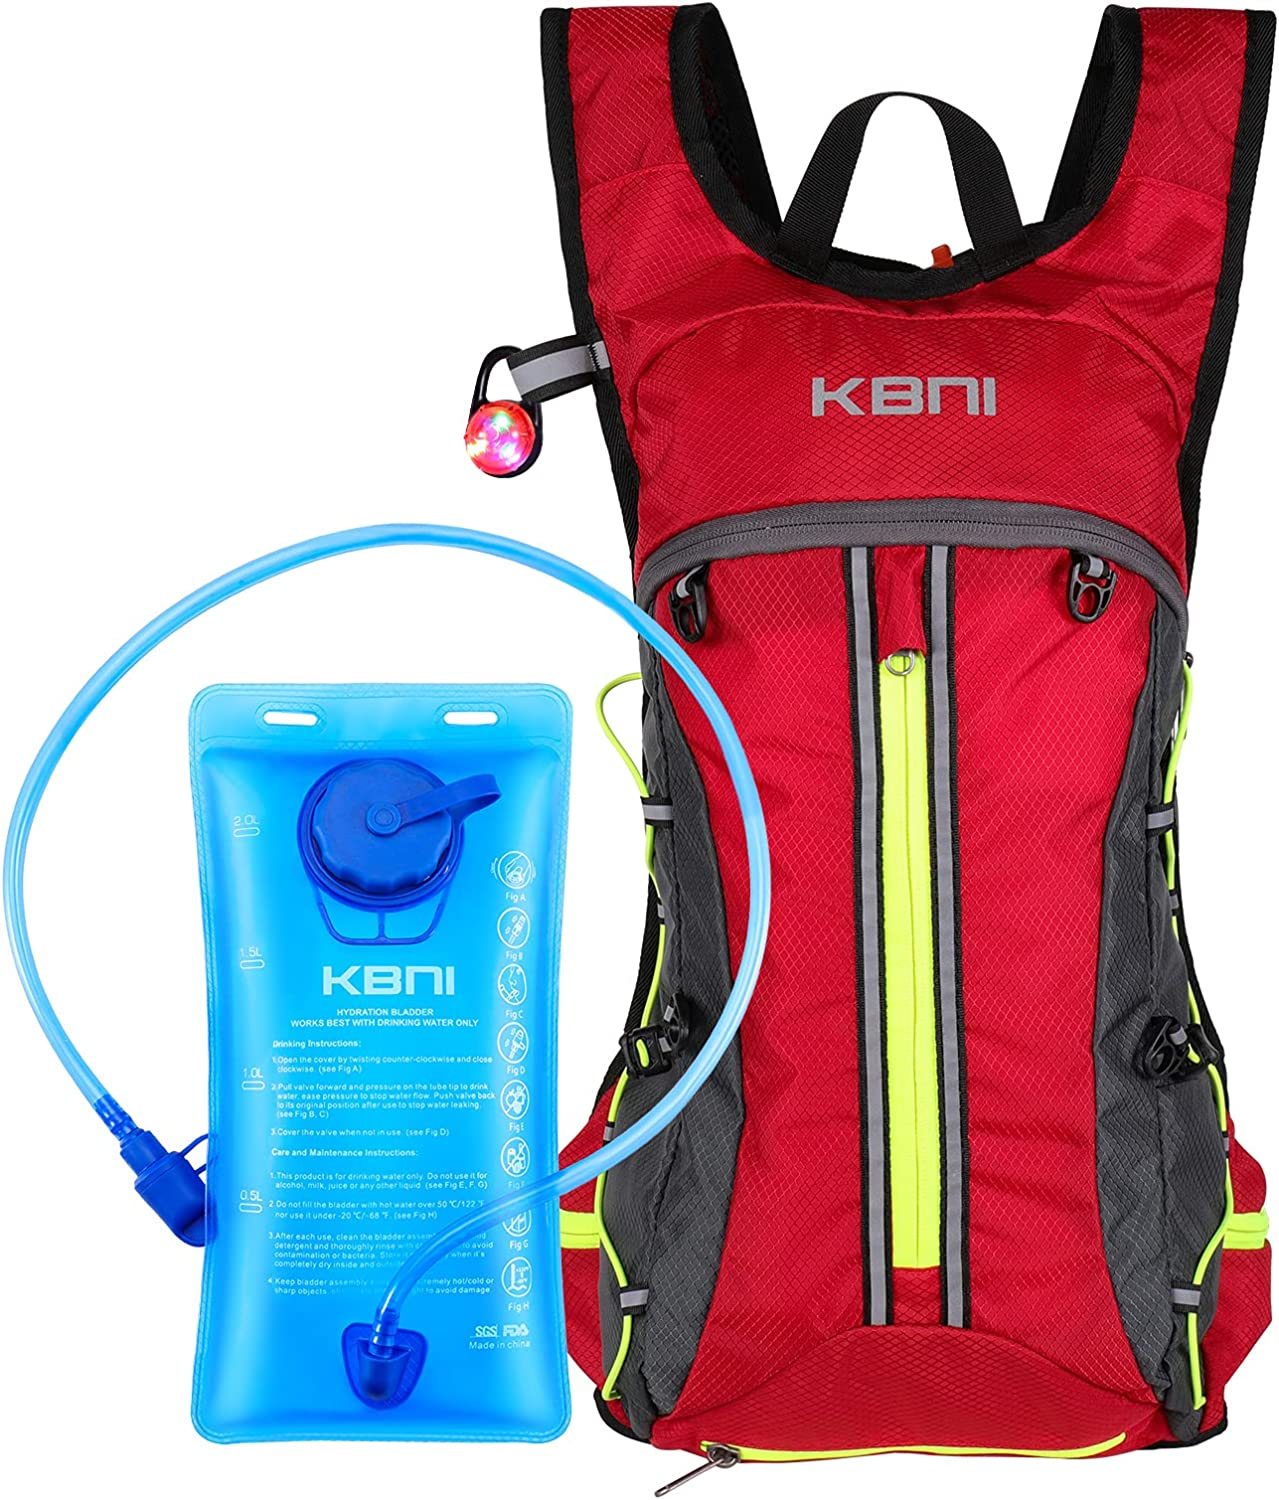 KBNI Hydration Backpack Max 87% OFF with mart 2L Water Portable Bladder Pac